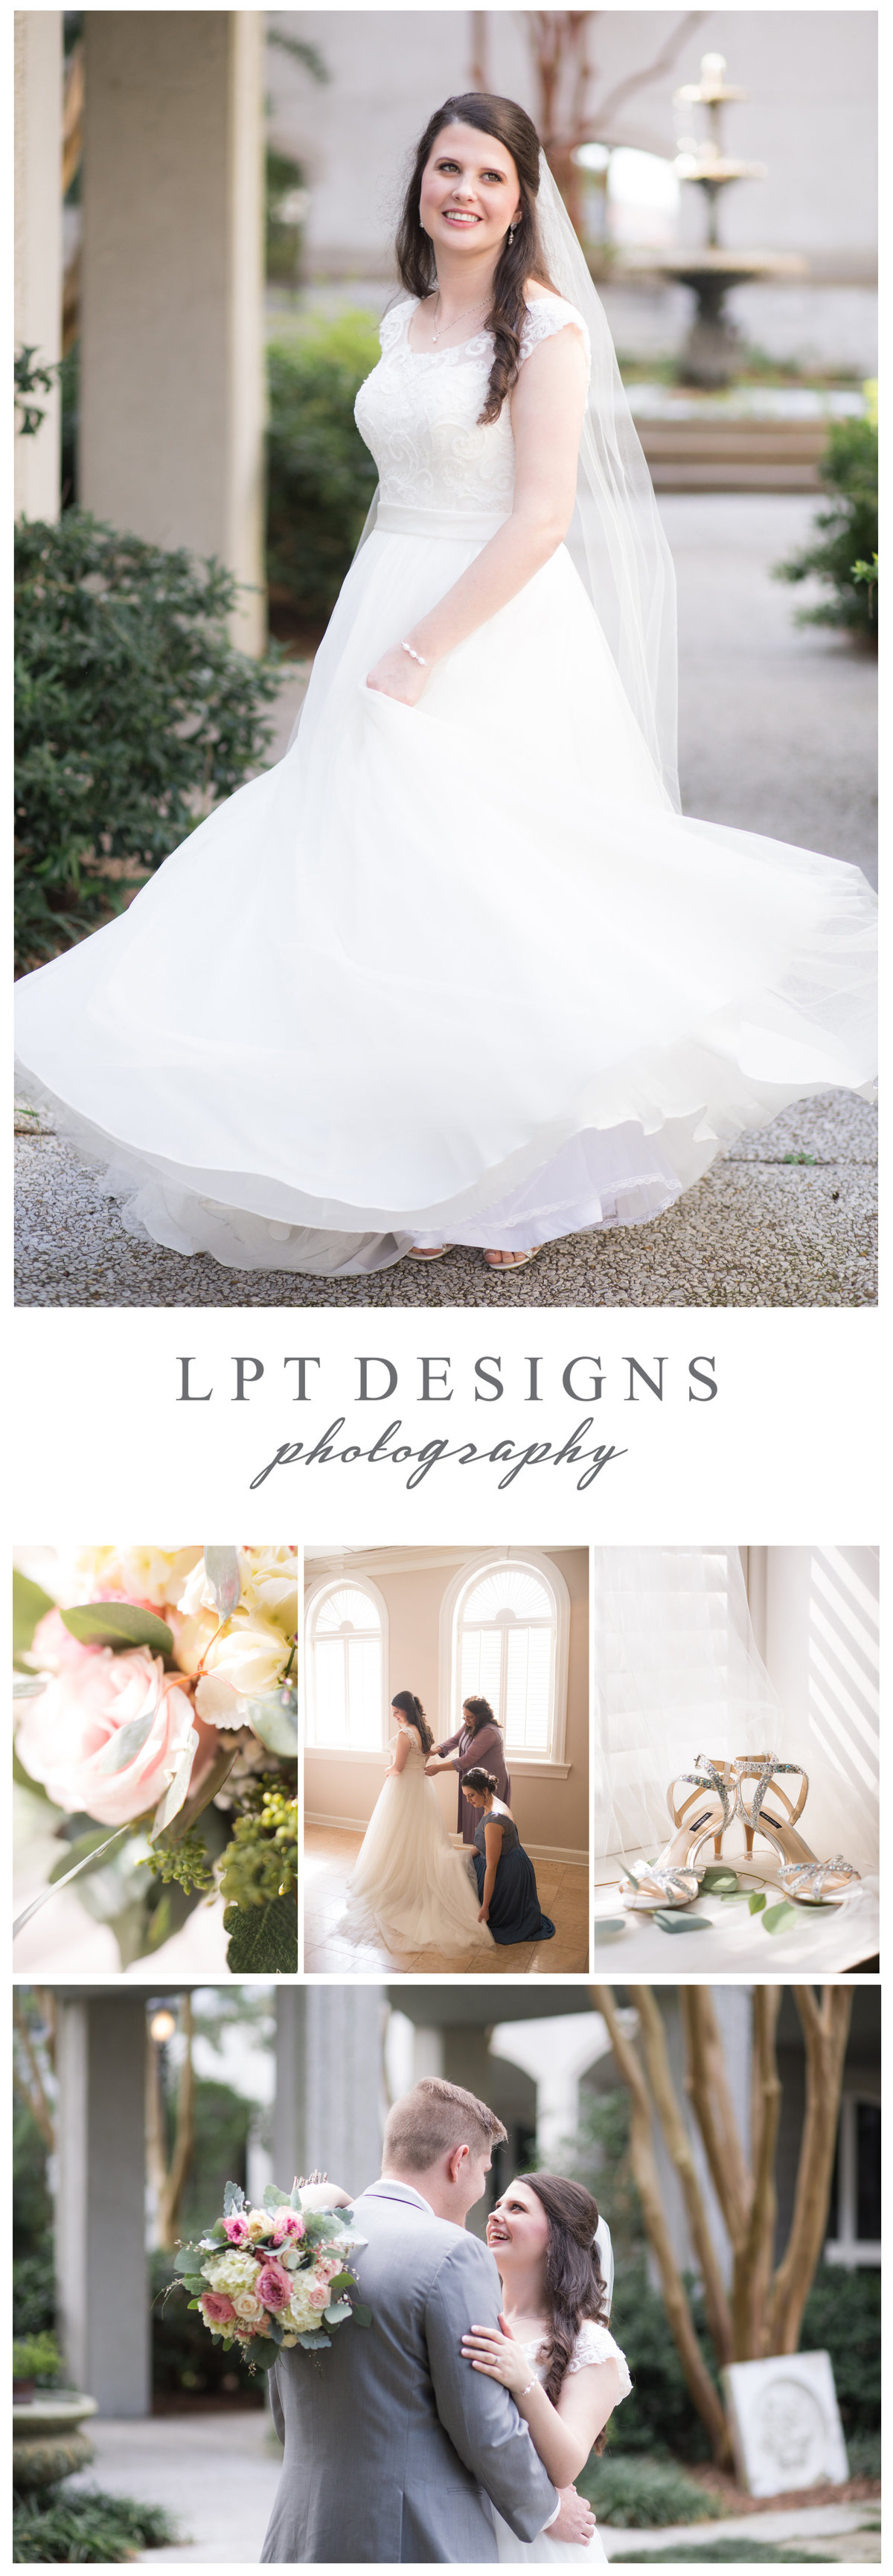 LPT Designs Photography Lydia Thrift Gadsden Alabama Fine Art Wedding Photographer WA 1